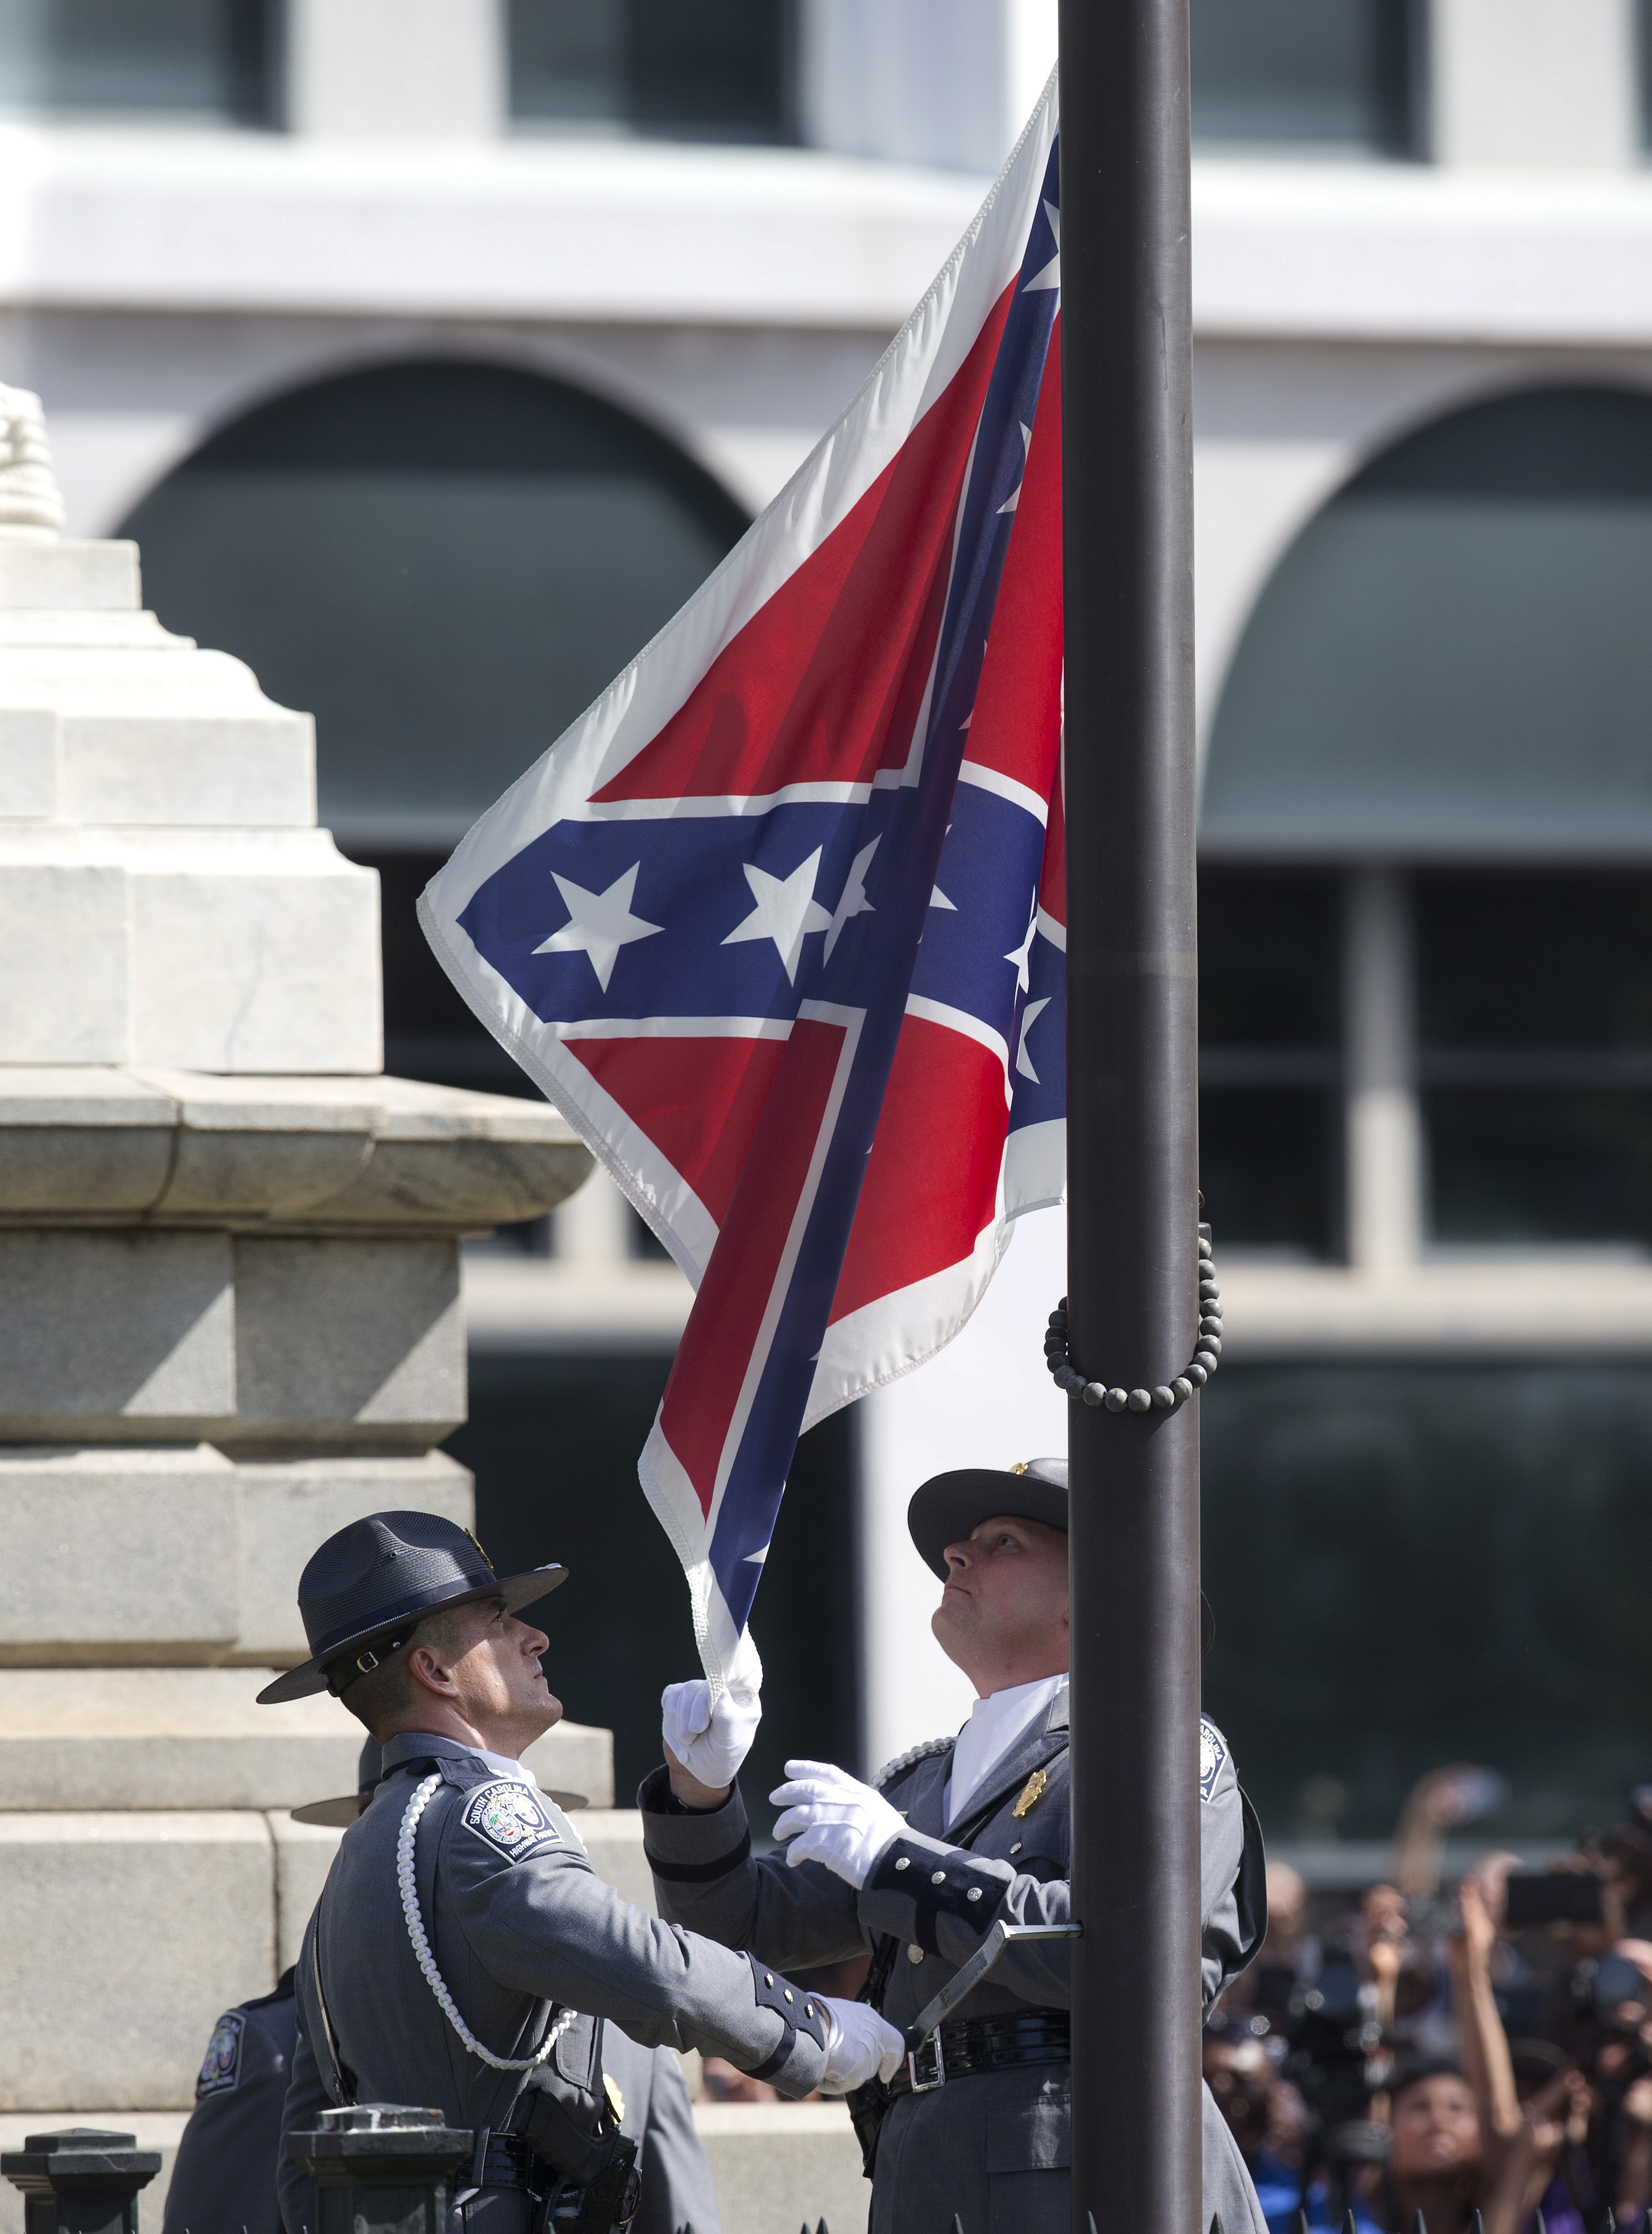 Confederate flag taken down in South Carolina after 54 years